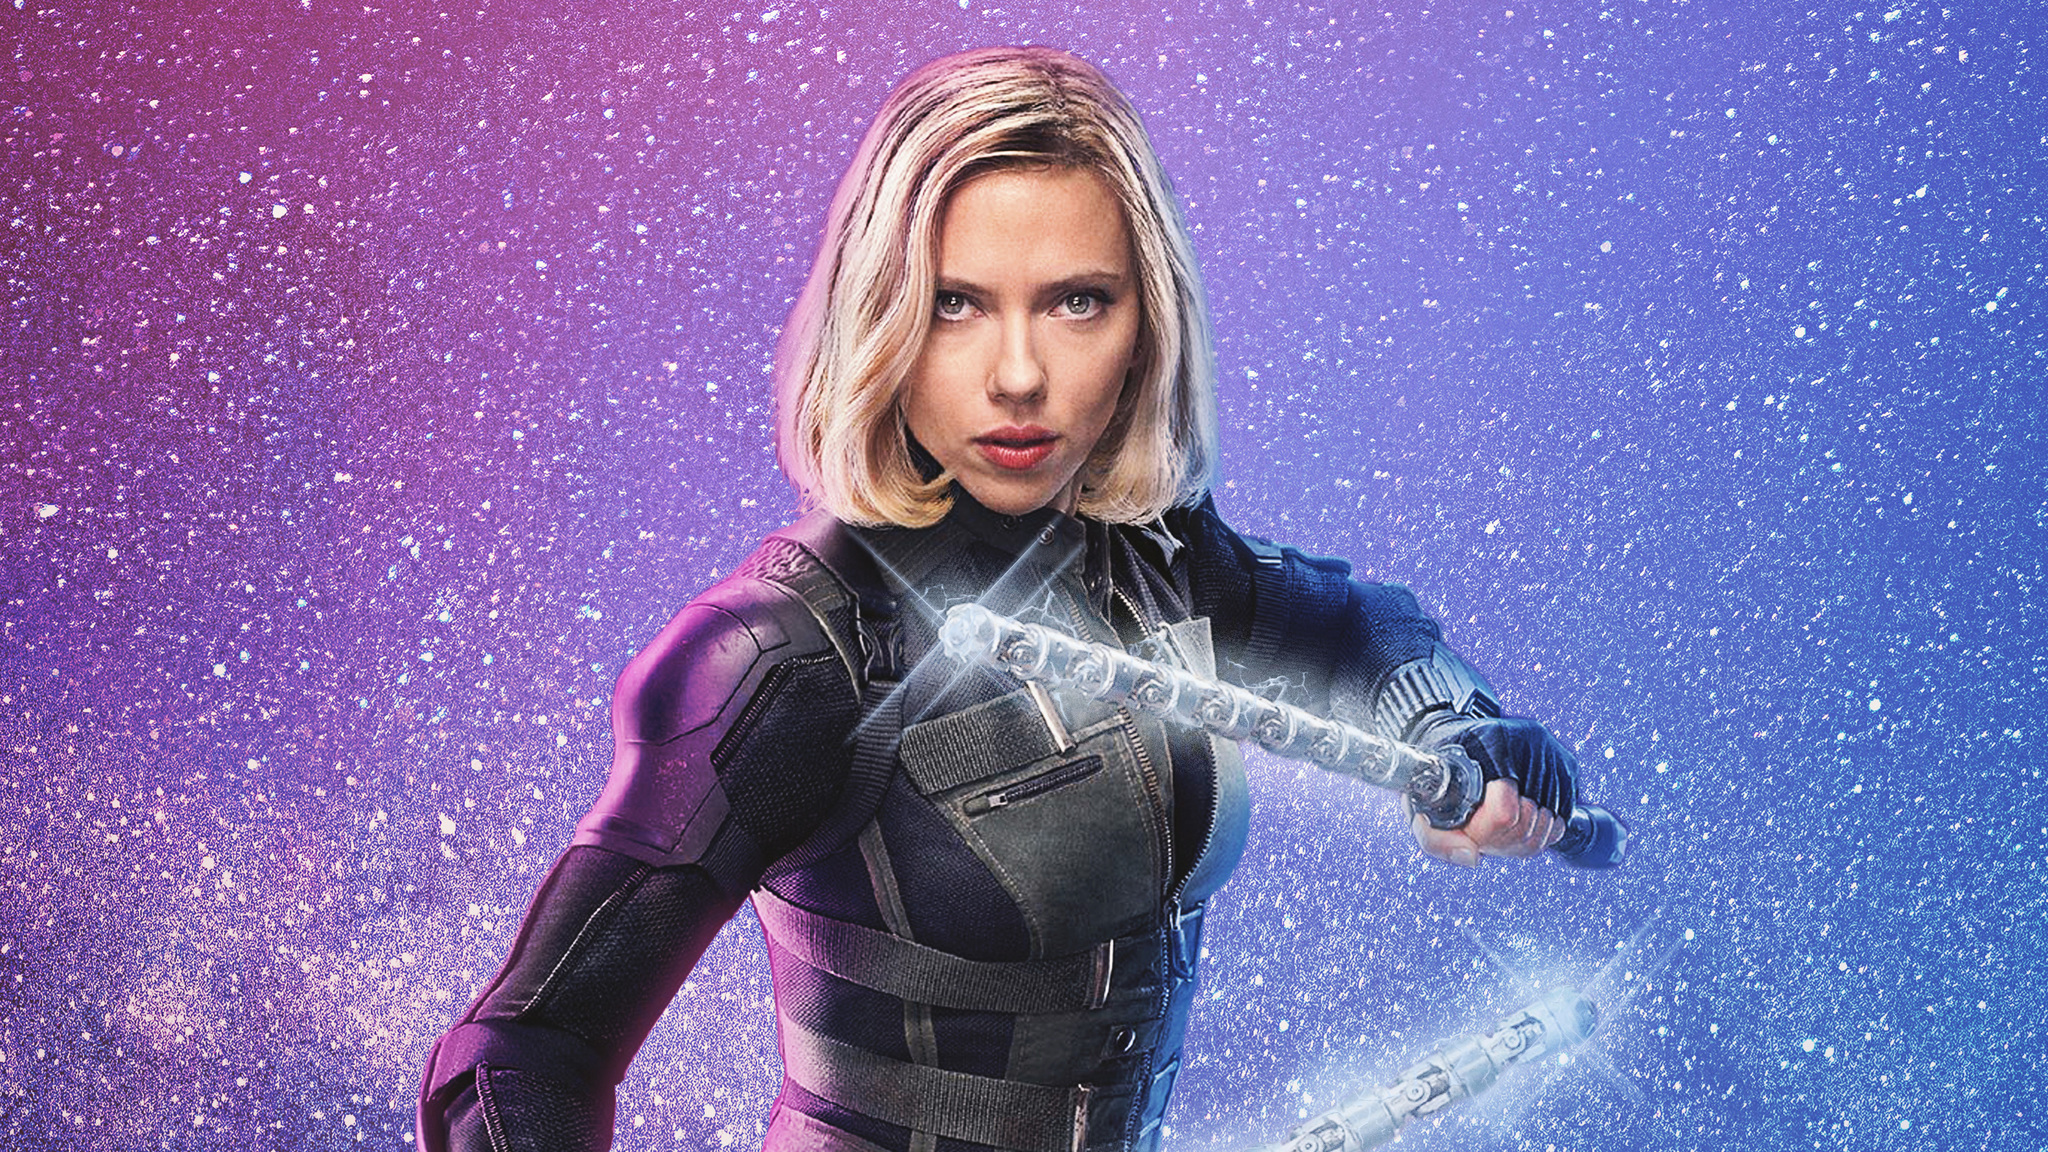 2048x1152 Avengers Infinity War Black Widow 4k 2048x1152 Resolution Hd 4k Wallpapers Images Backgrounds Photos And Pictures